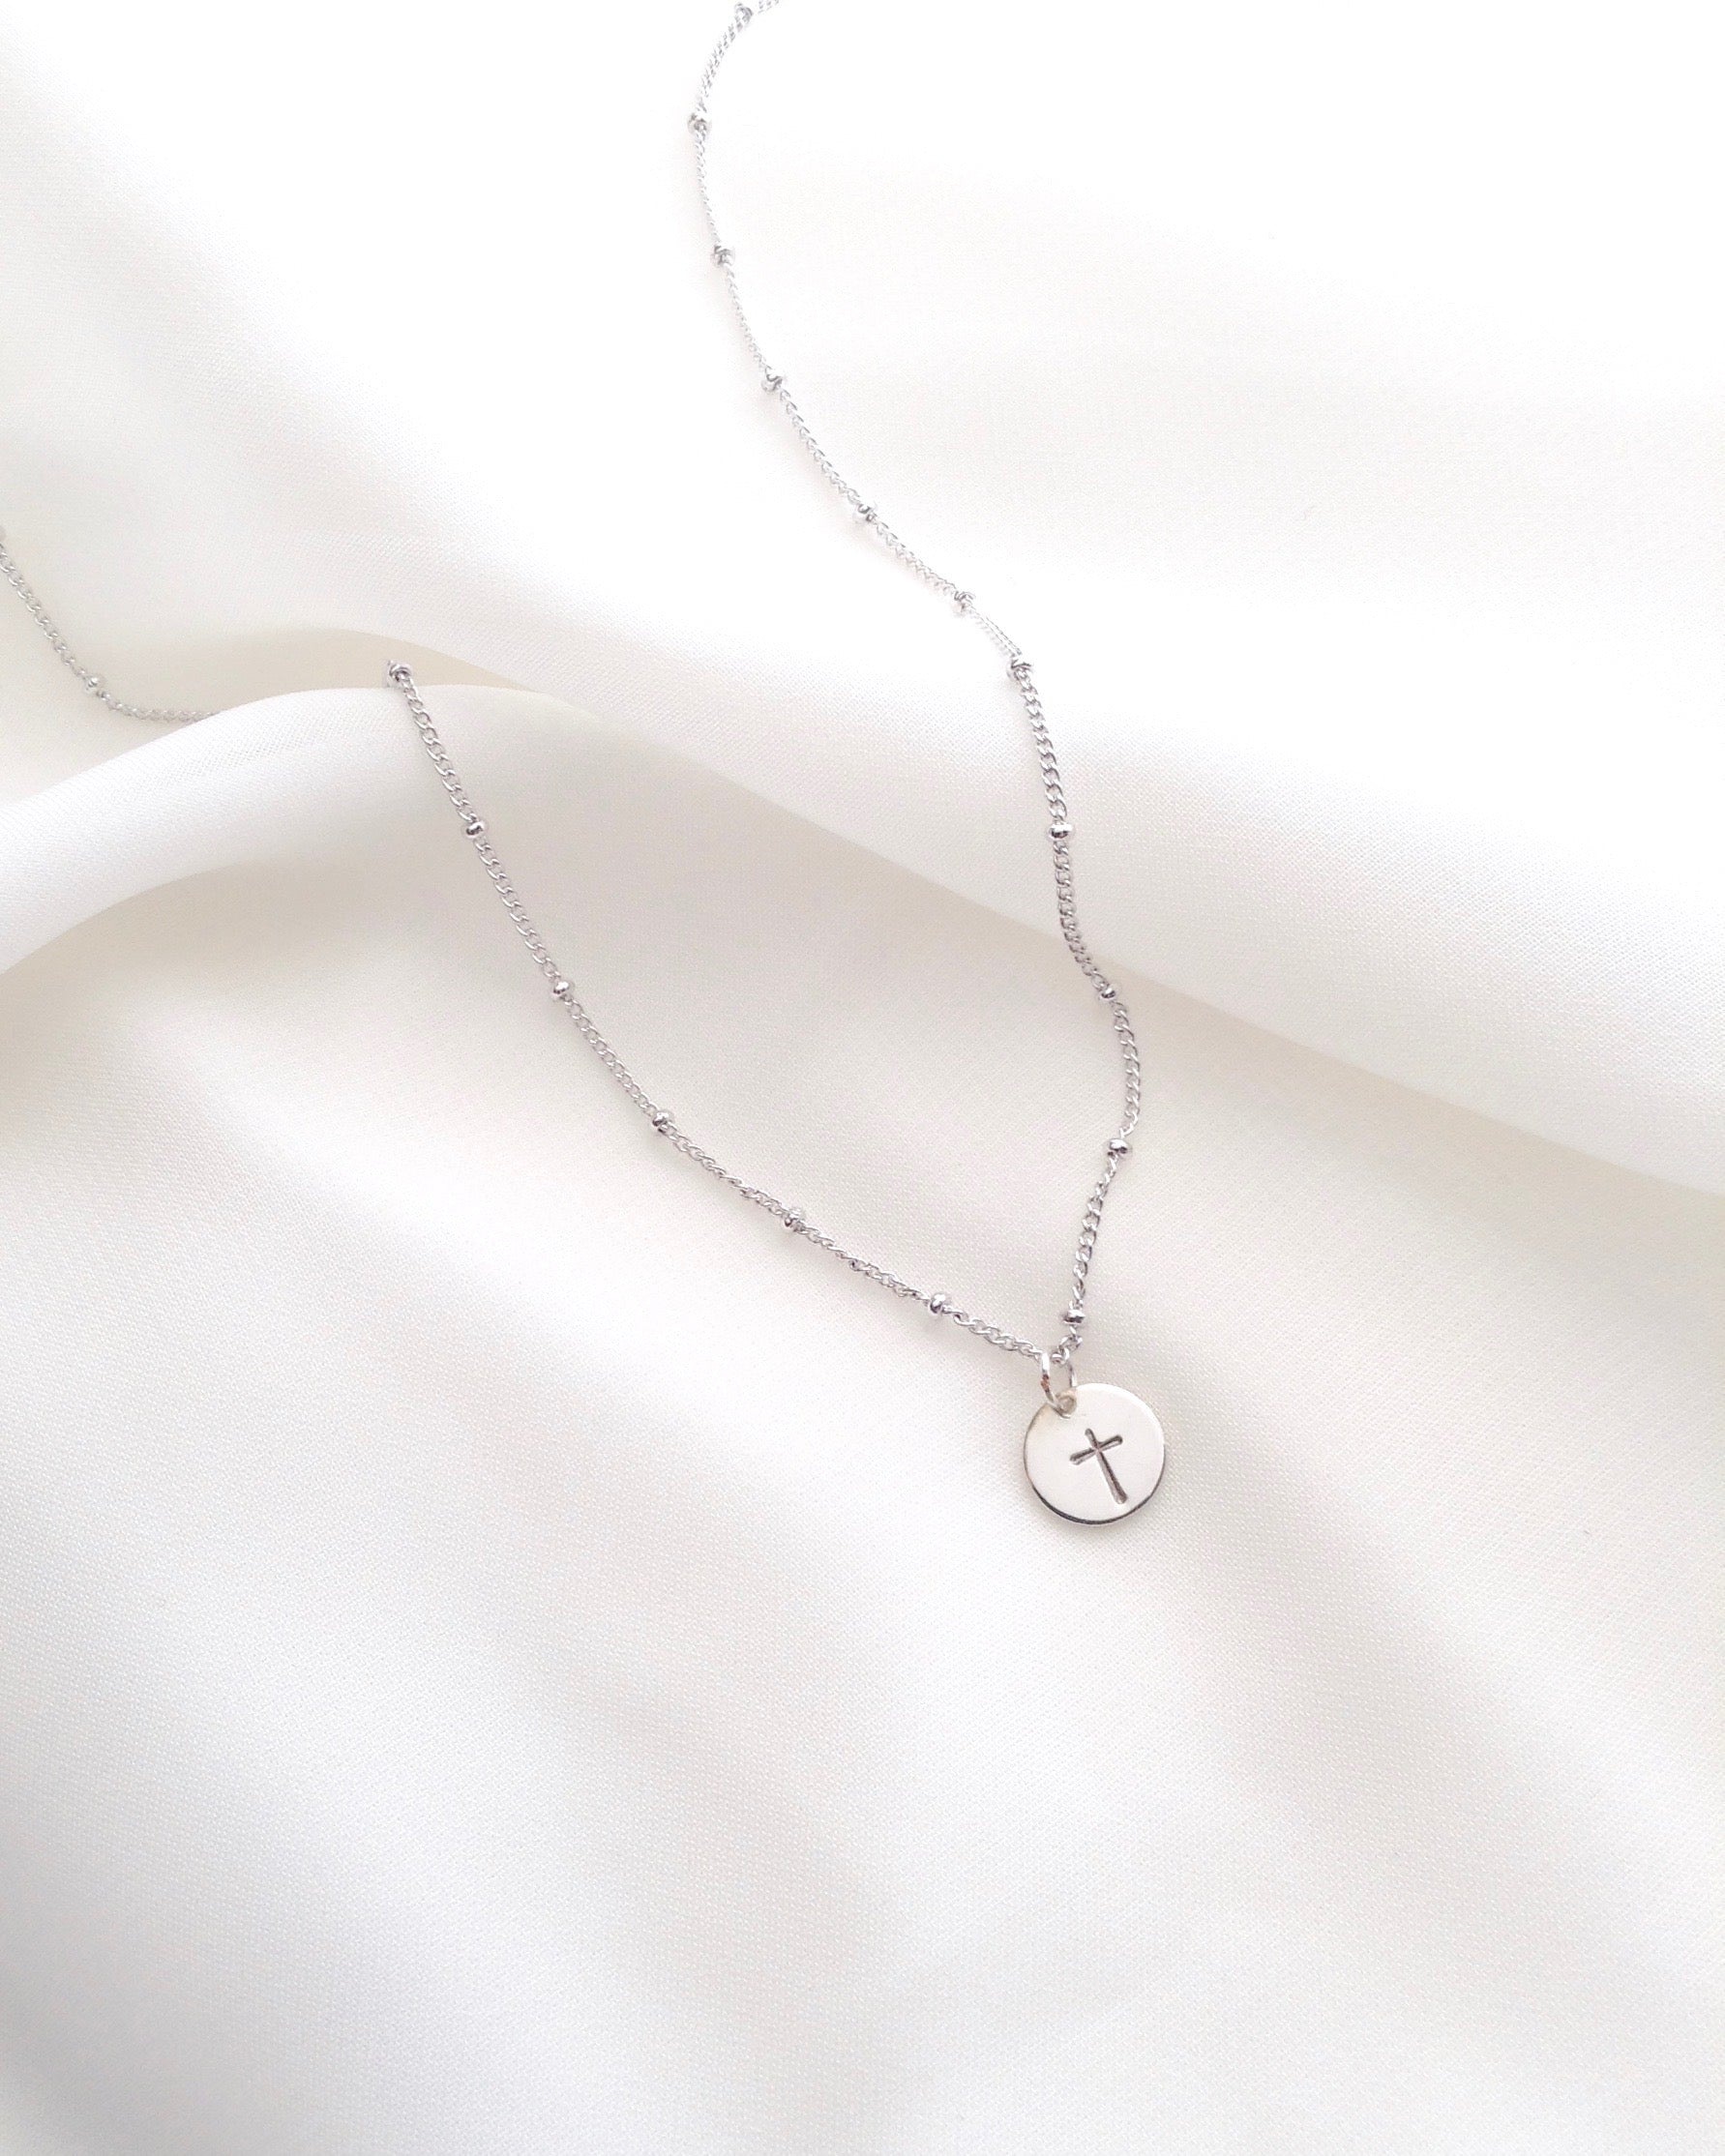 Minimalist Cross Dew Drop Necklace in Sterling Silver or Gold Filled | IB Jewelry